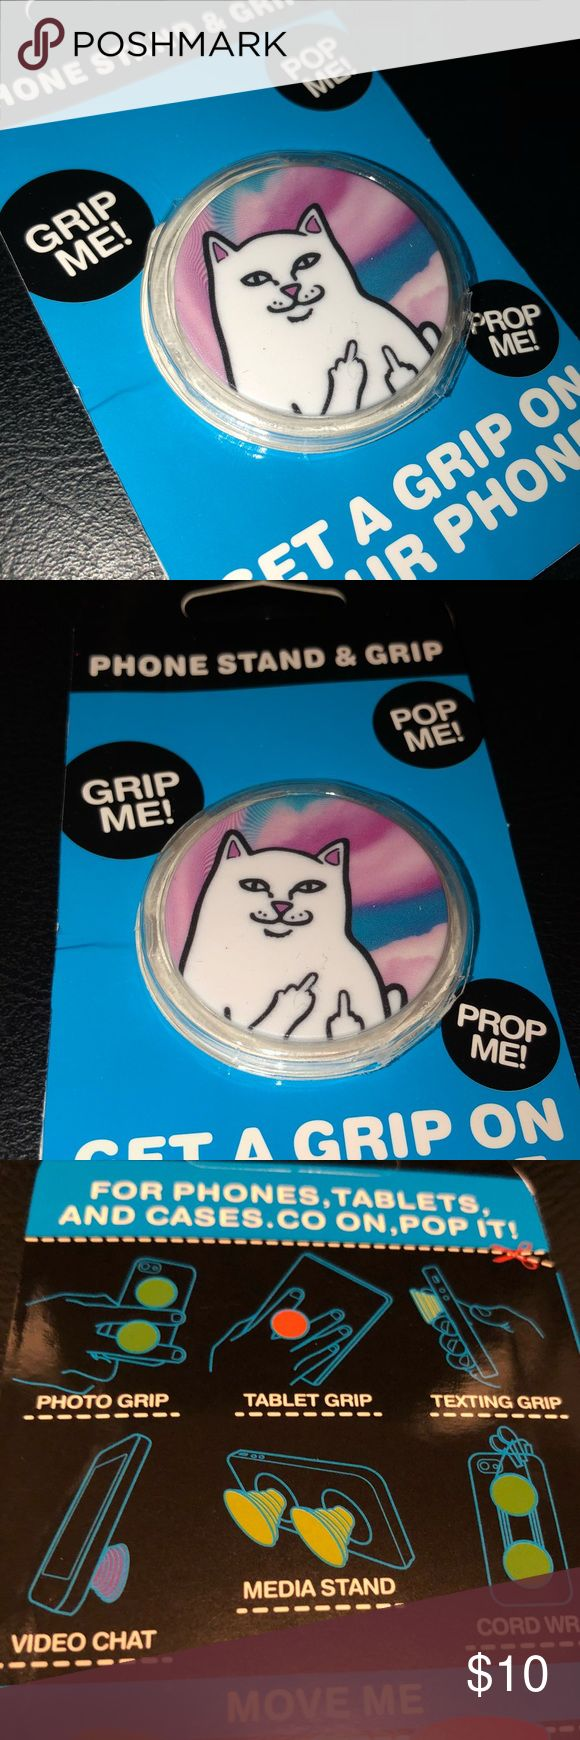 Cool Cat Popsocket The Popsocket! Perfect to use as a grip for any device such as phones and tablets. We are open to negotiations and reasonable offers! ‼️Buy 2 and get 1 free‼️ Checkout my closet for more designs! Accessories